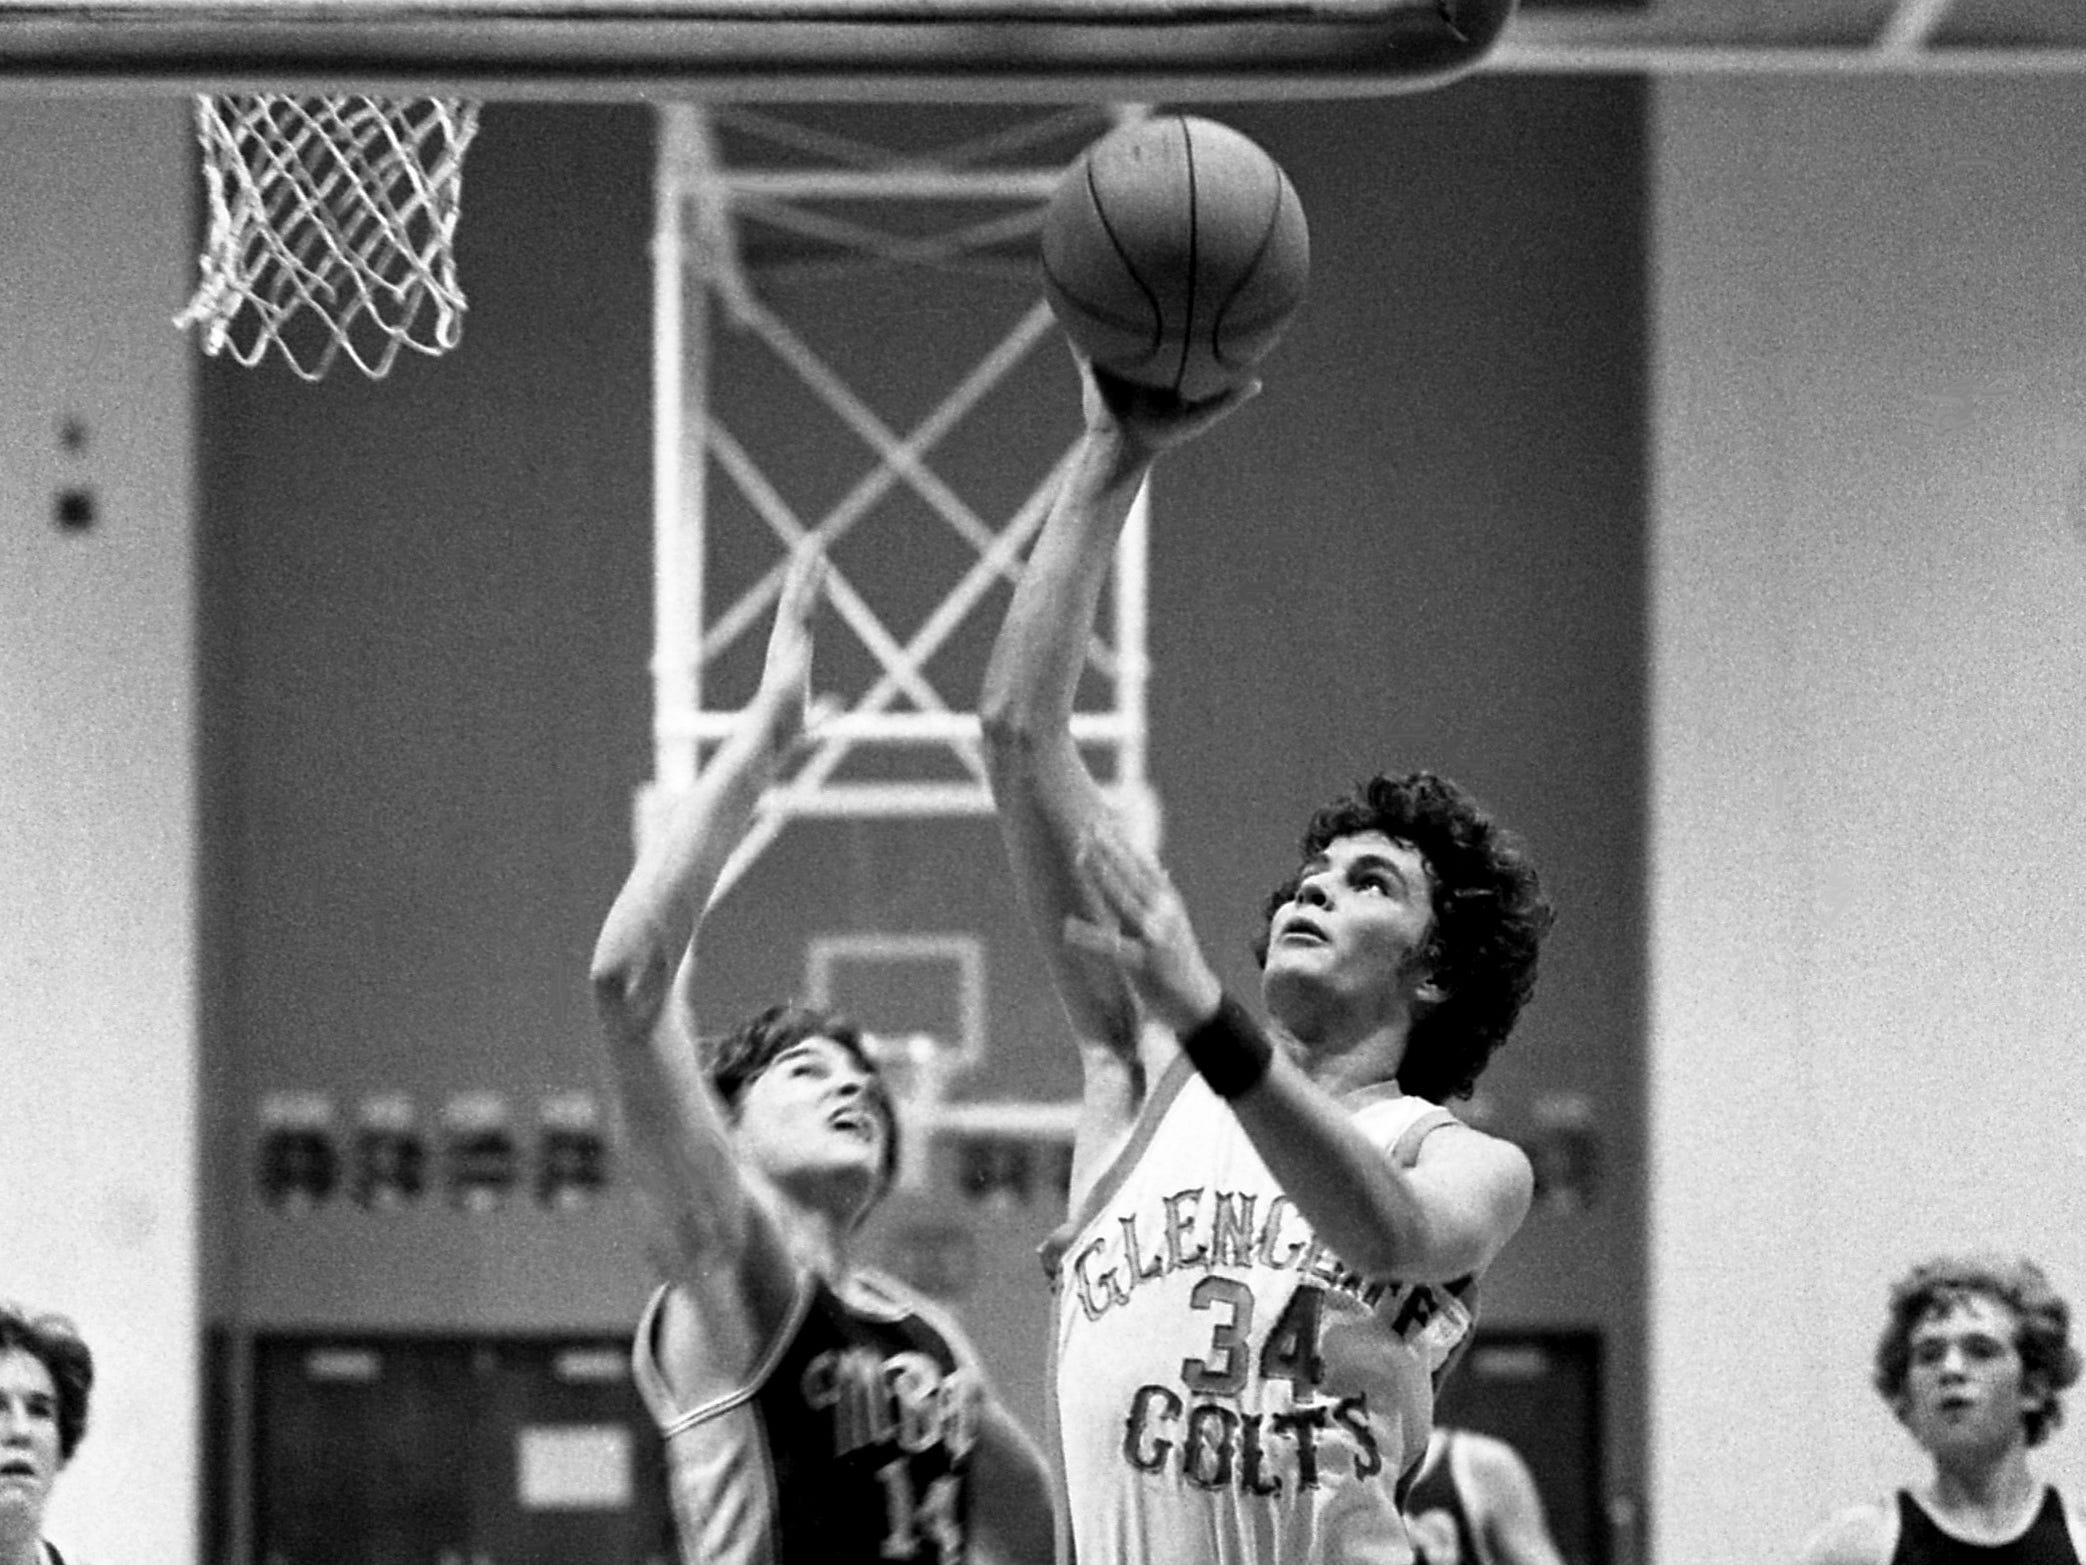 Glencliff High's Jeff Walker (34) moves in for two of his eight points against Montgomery Bell Academy's Bob Calton (14) during their heated NIL battle Jan. 19, 1979. But the underdog MBA went on the road to upset Glencliff 55-53 in District 11-AAA battle.